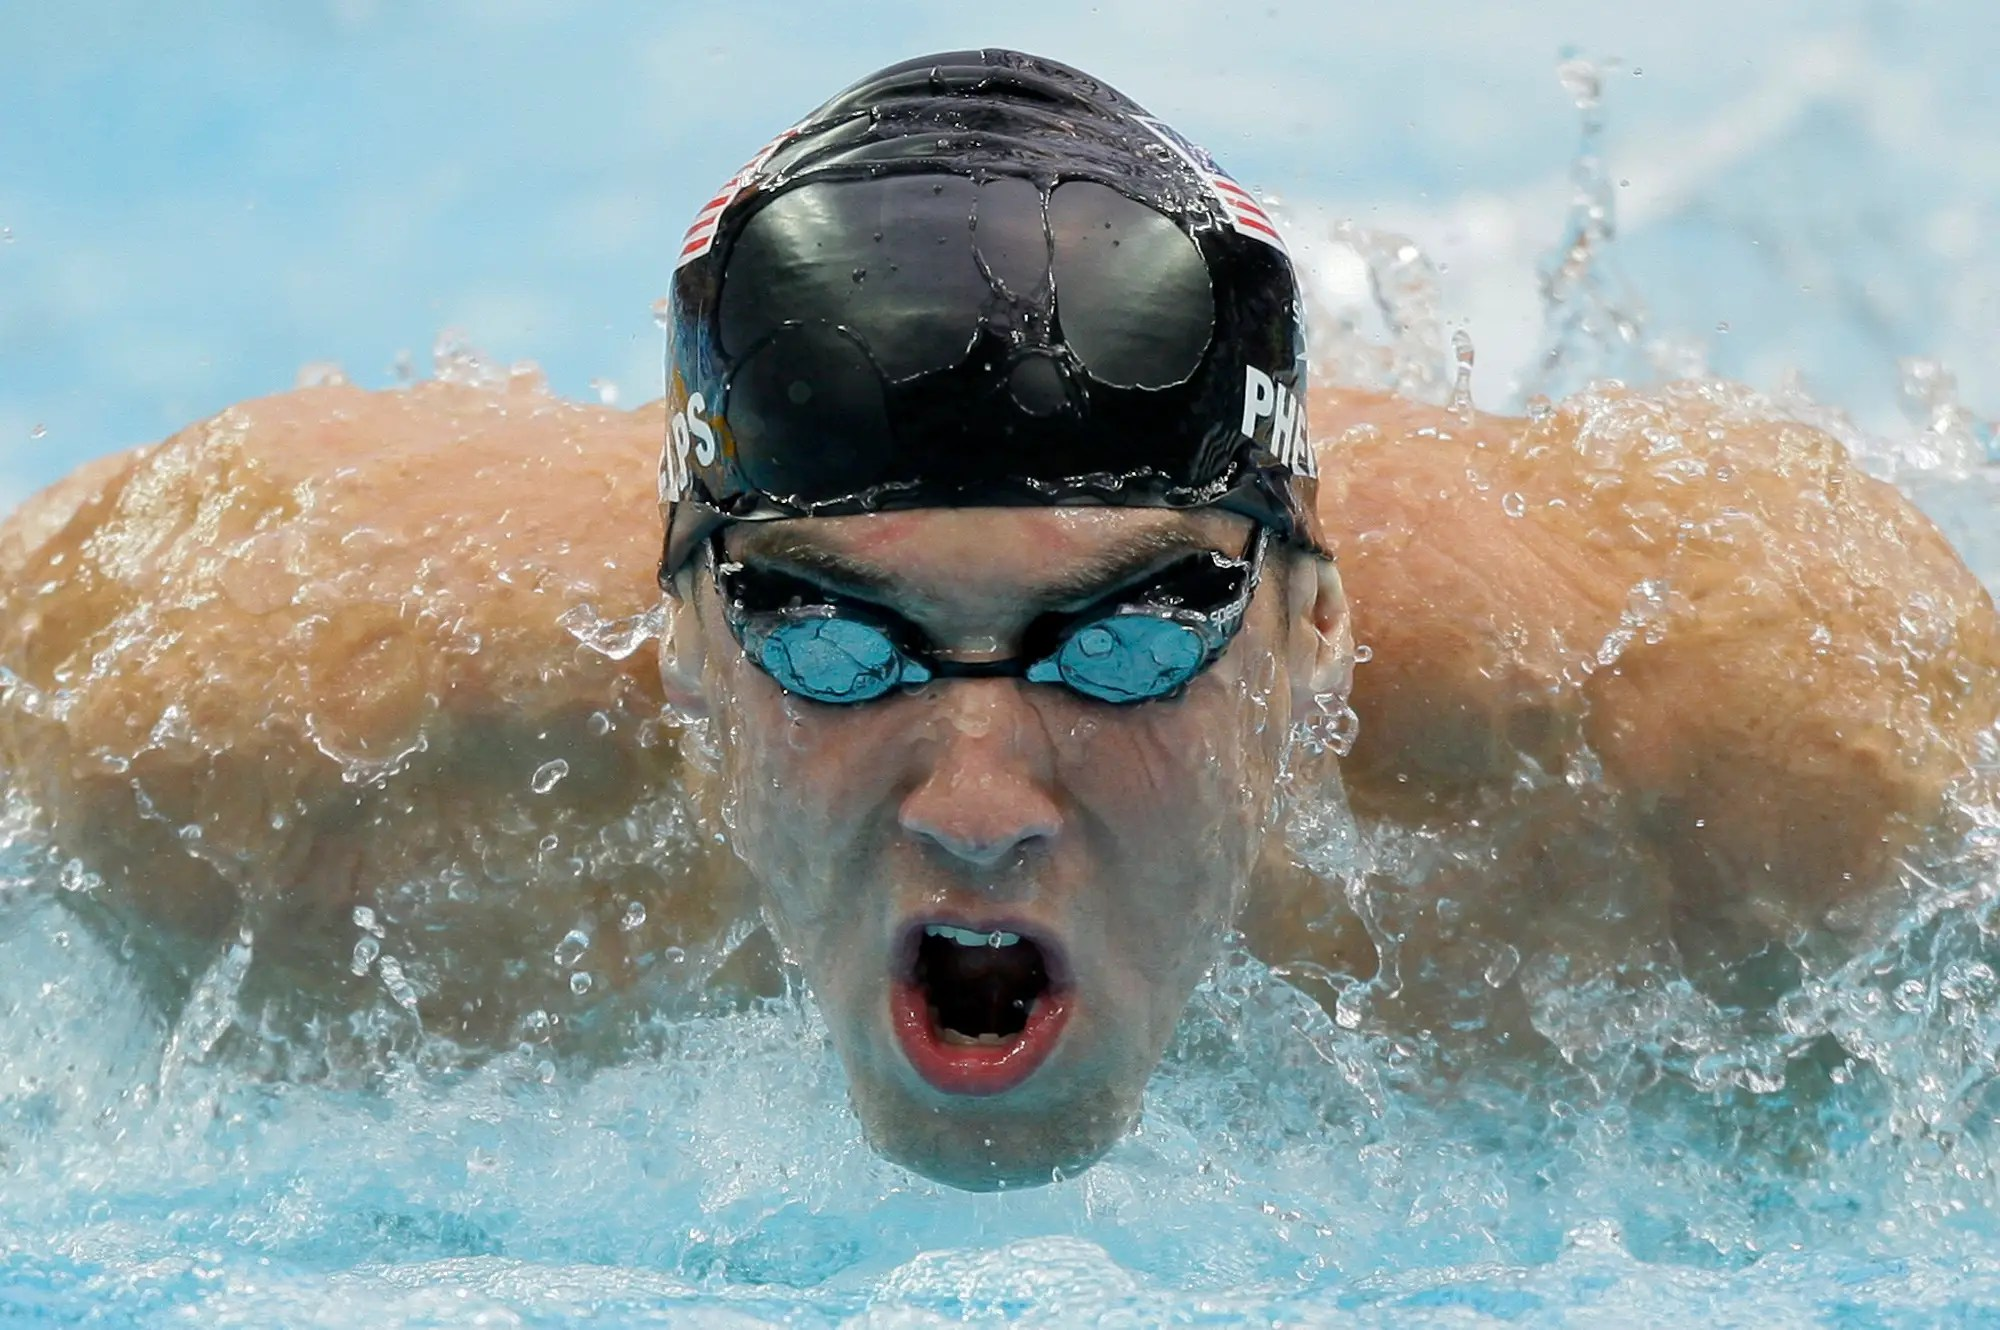 Beijing, 2008: 2008 was the year the world met Michael Phelps. The record-breaking US swimmer won eight gold medals that year, the most ever won in a single Olympic Games. He's now one of the most celebrated sportspeople in American history.